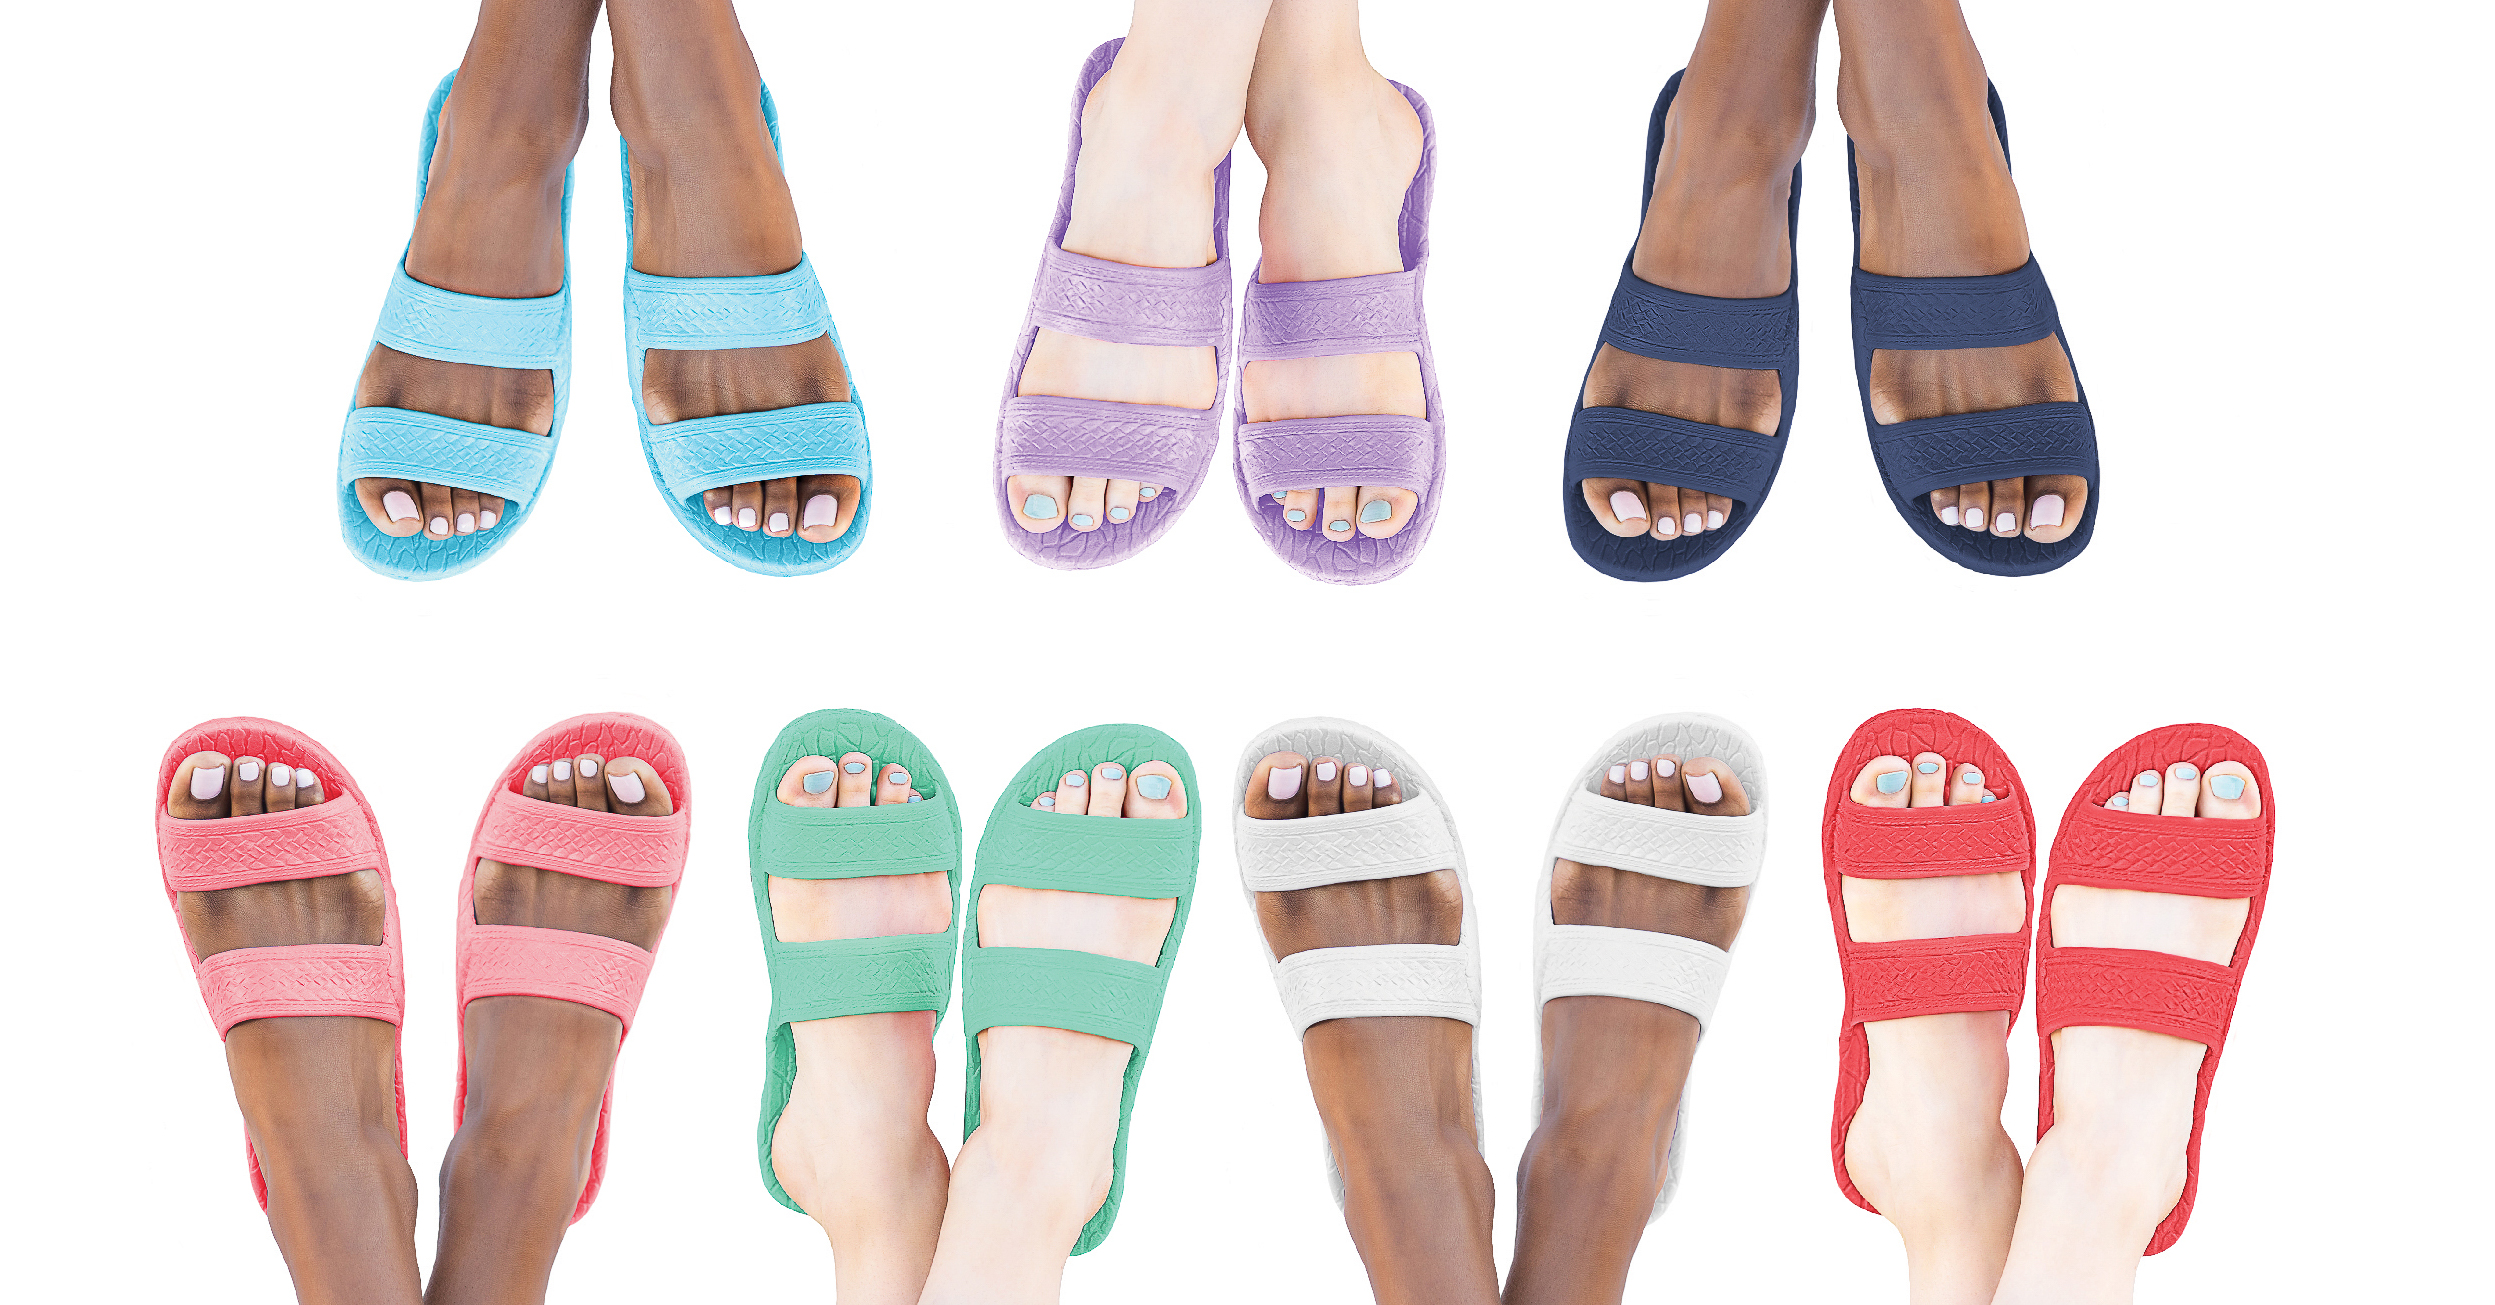 Color Jandals® - Red, Navy, White, Pink, Aqua, Lilac and Green